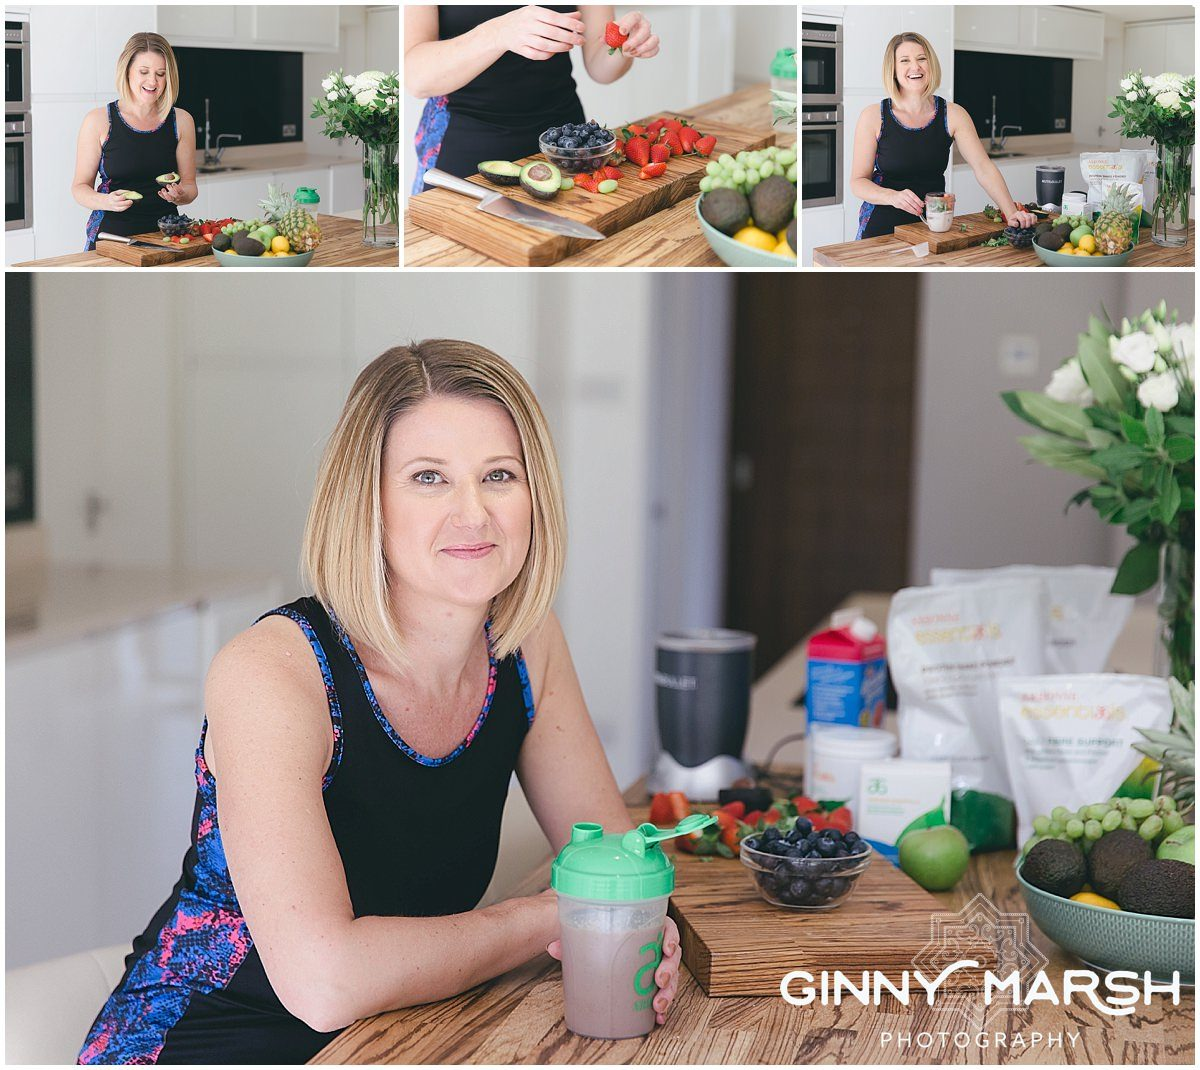 A Personal Branding Shoot for Charlotte: An Arbonne Consultant & Mortgage Advisor.